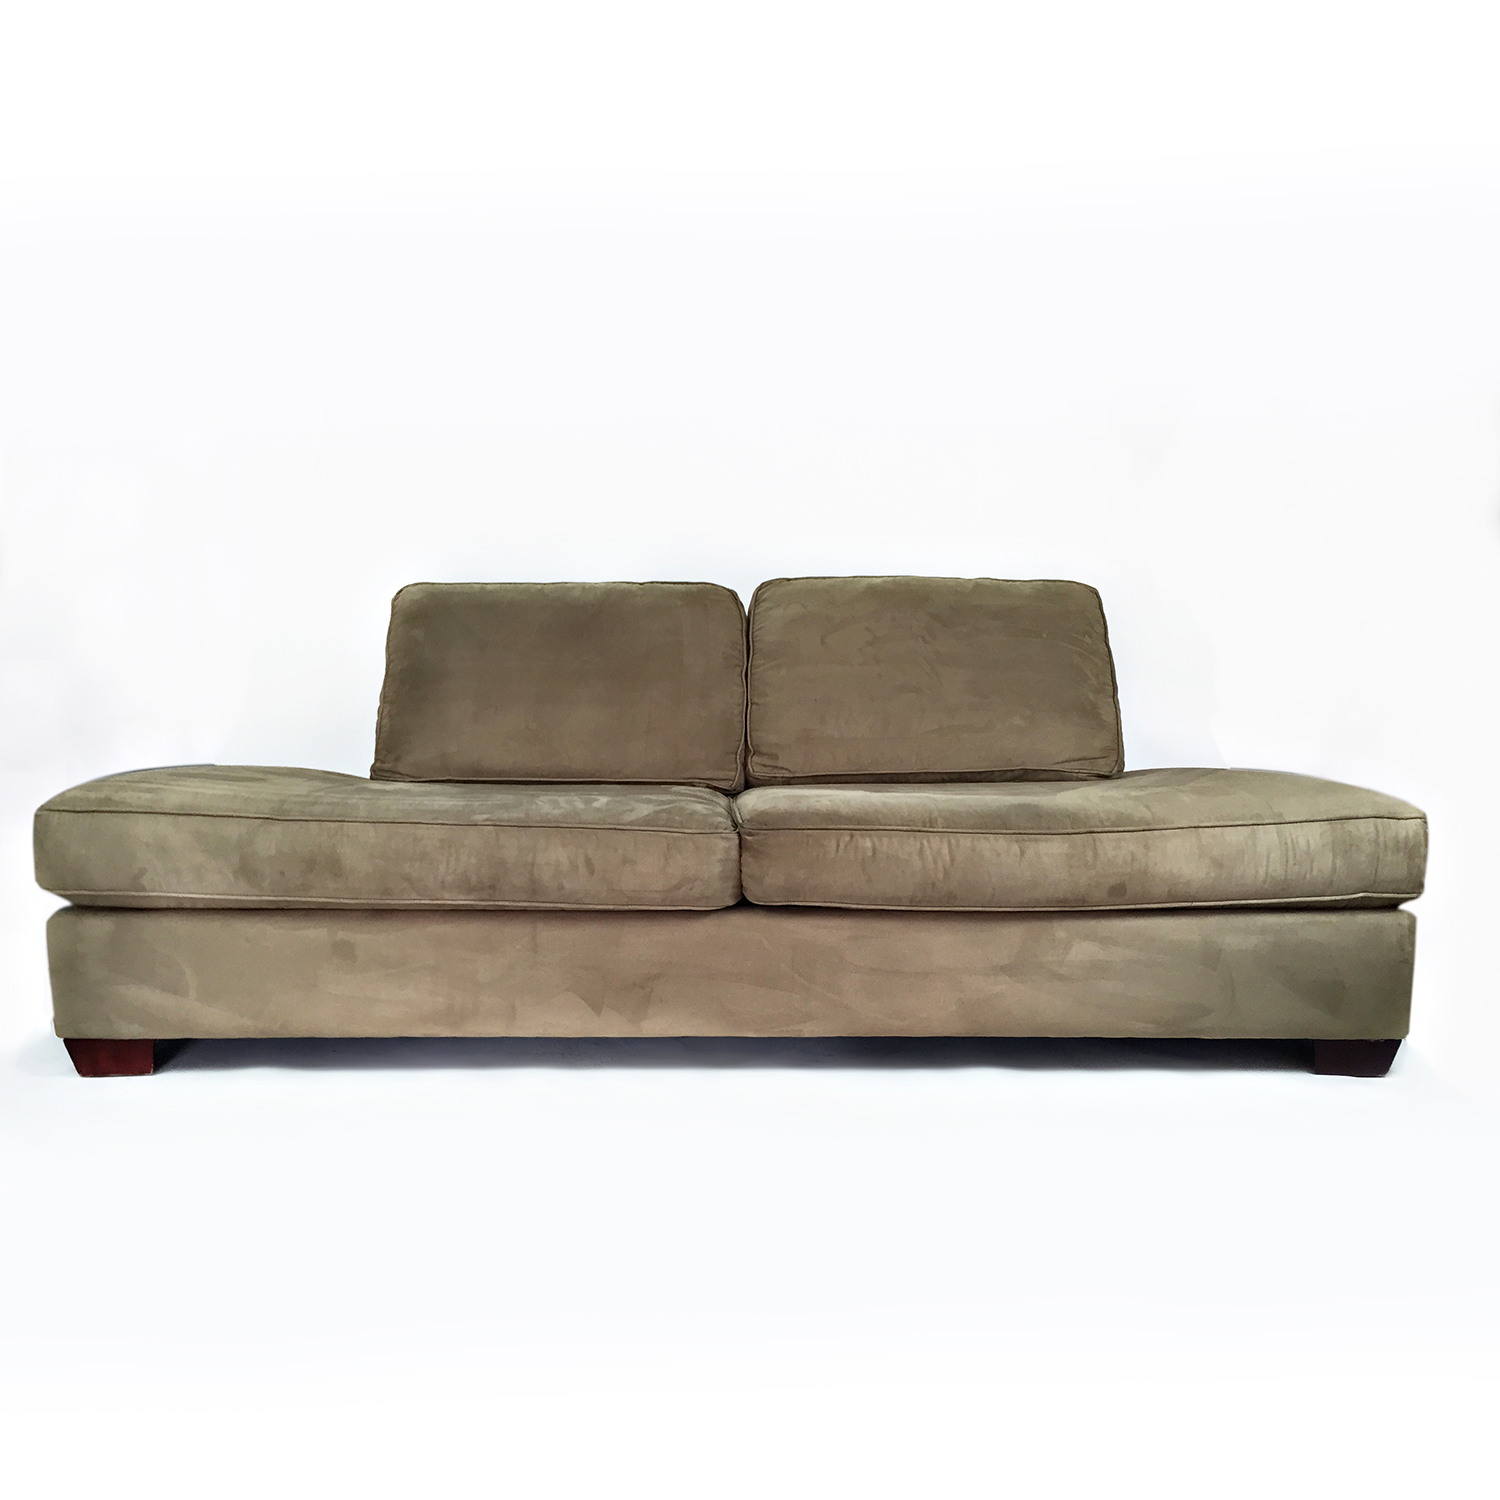 69 off max home max home sofa with end table set sofas for Sofa end tables